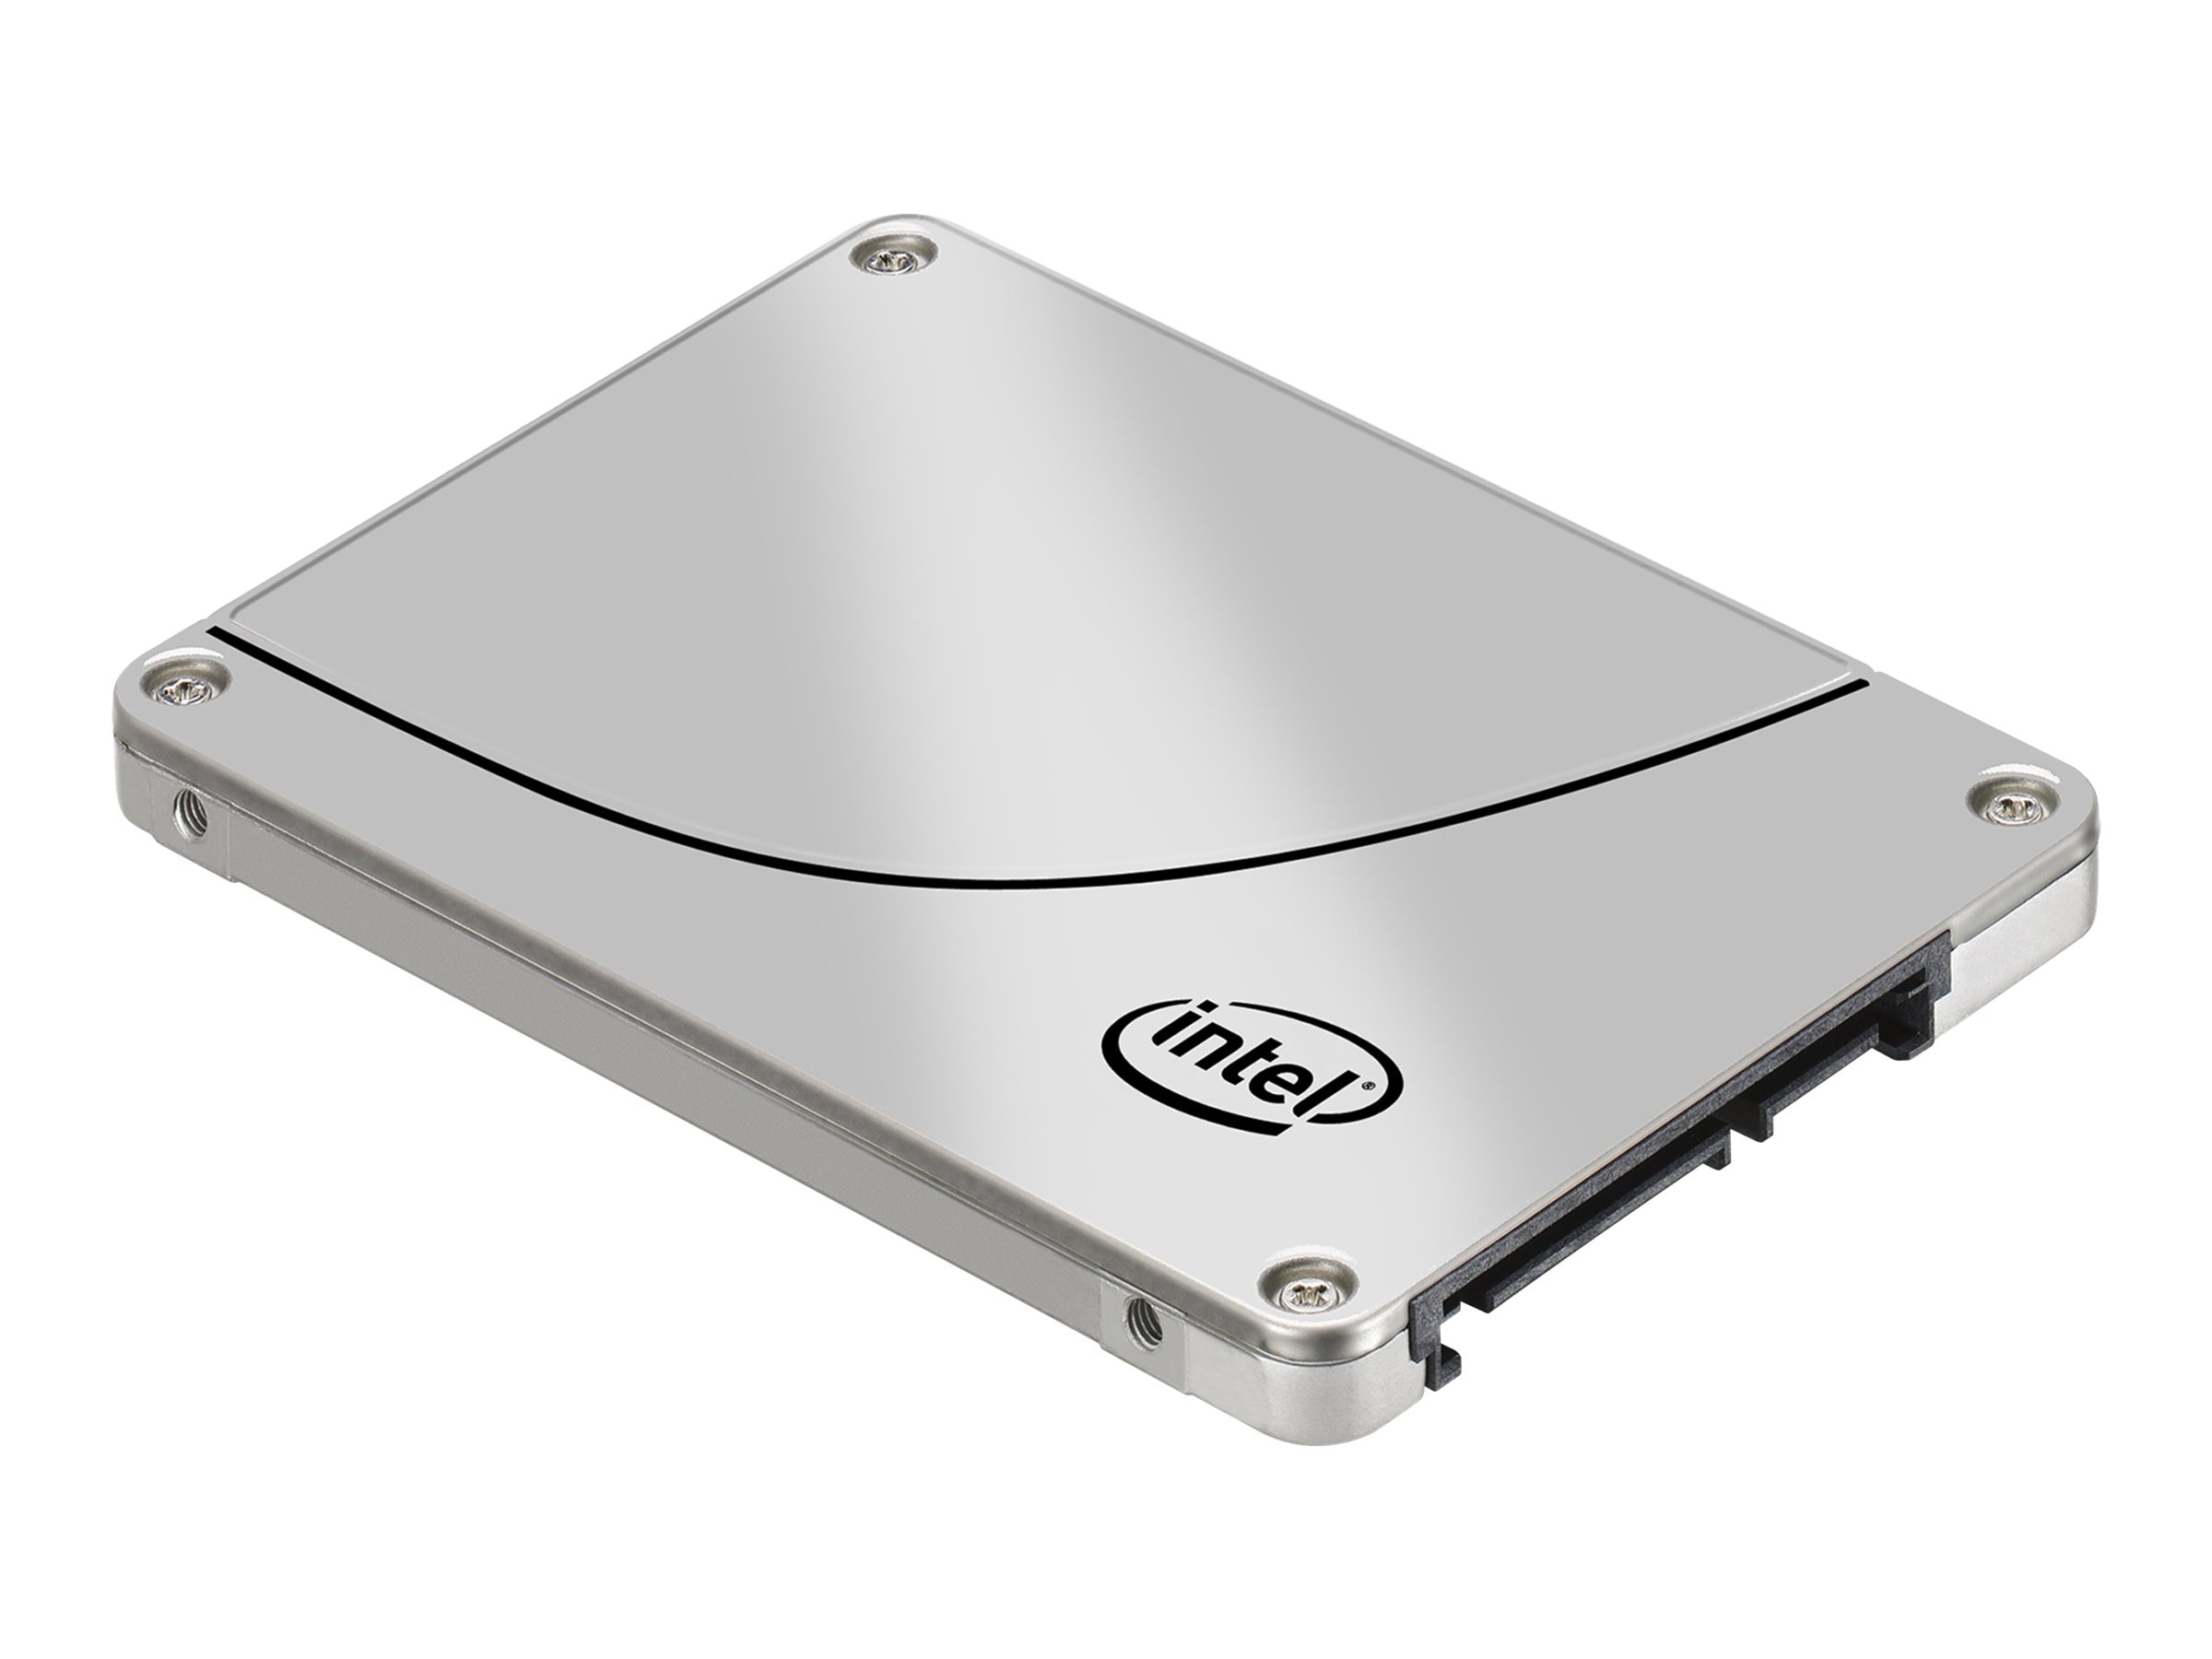 "Intel 800Gb DC S3700 Series SATA 6Gb s MLC 2.5"" 25nm Internal Solid State Drive, SSDSC2BA800G301, 15206870, Solid State Drives - Internal"